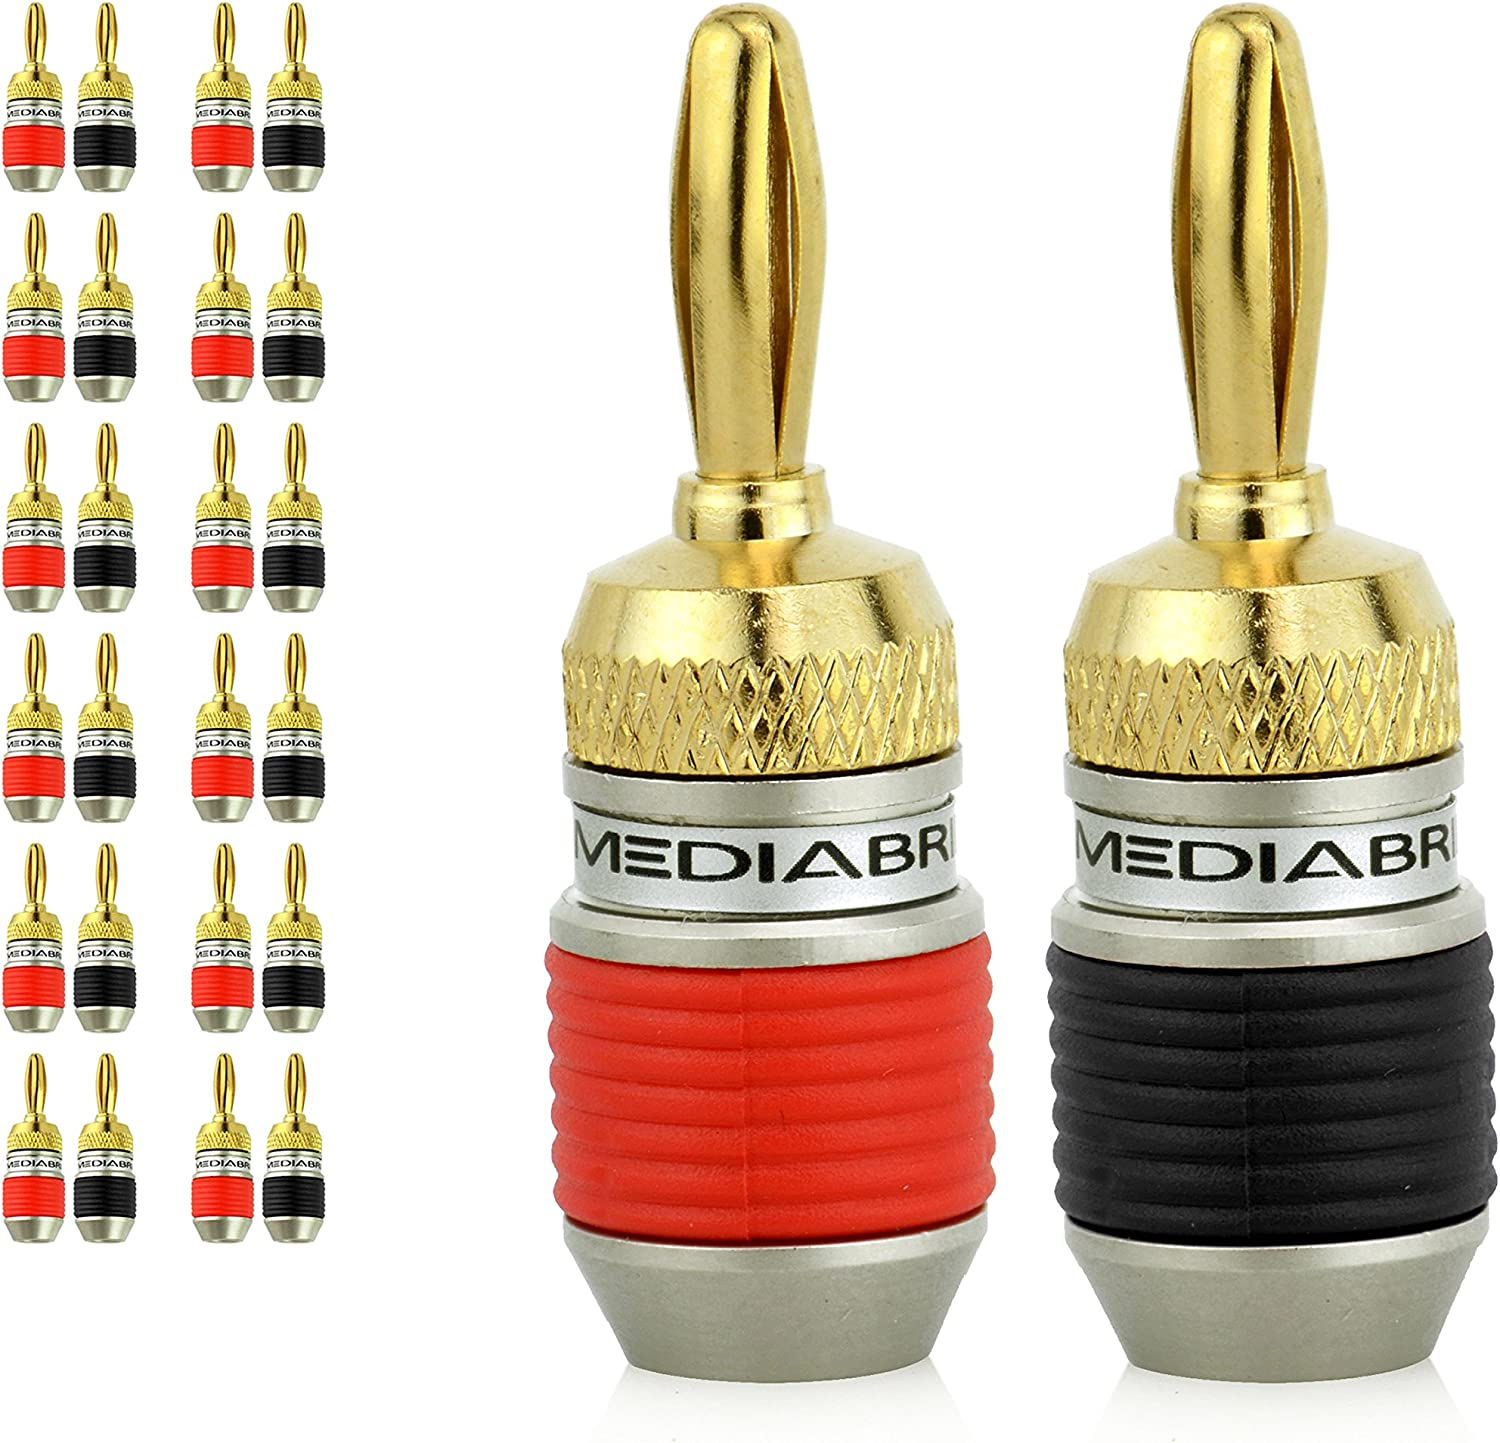 Mediabridge Banana Plugs - Corrosion-Resistant 24K Gold-Plated Connectors - 12 Pair/24 Banana Plugs (Part# SPC-BP2-12 )